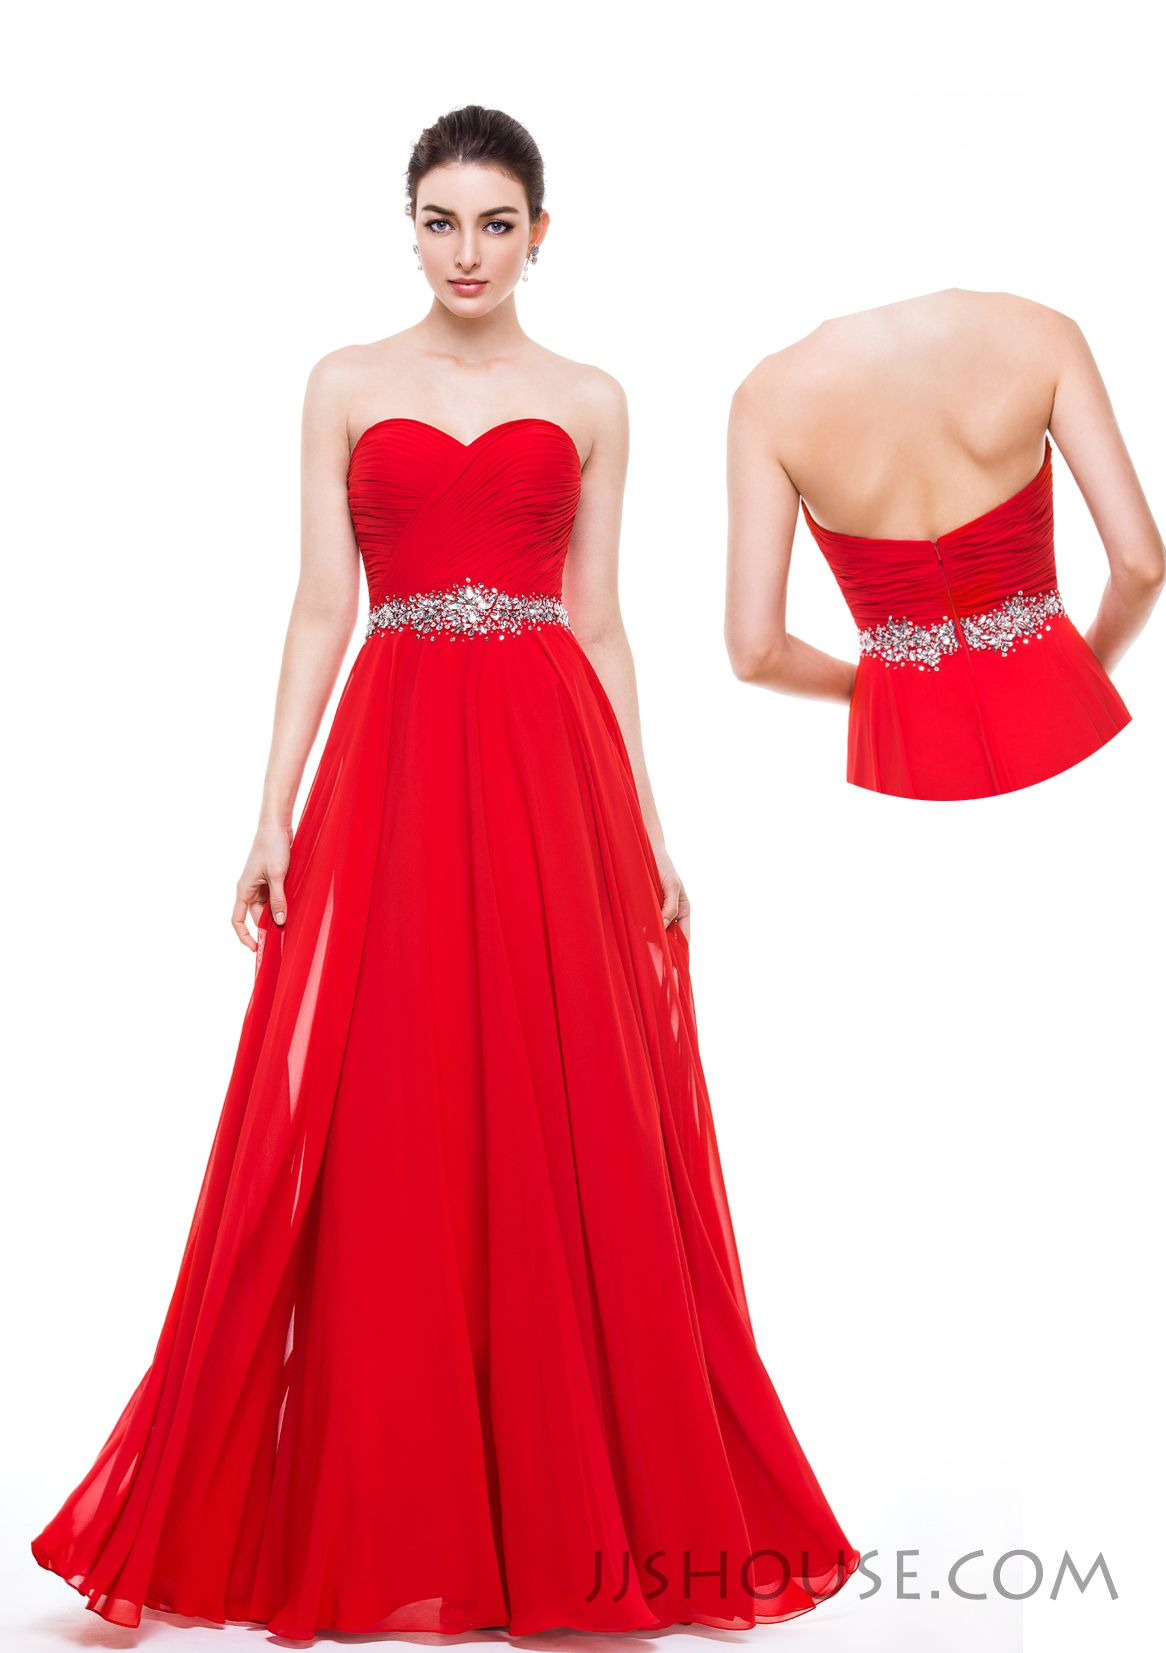 Simple yet classic, this Prom dress will easily meet all the requirements on your checklist. #JJsHouse #Party #Prom